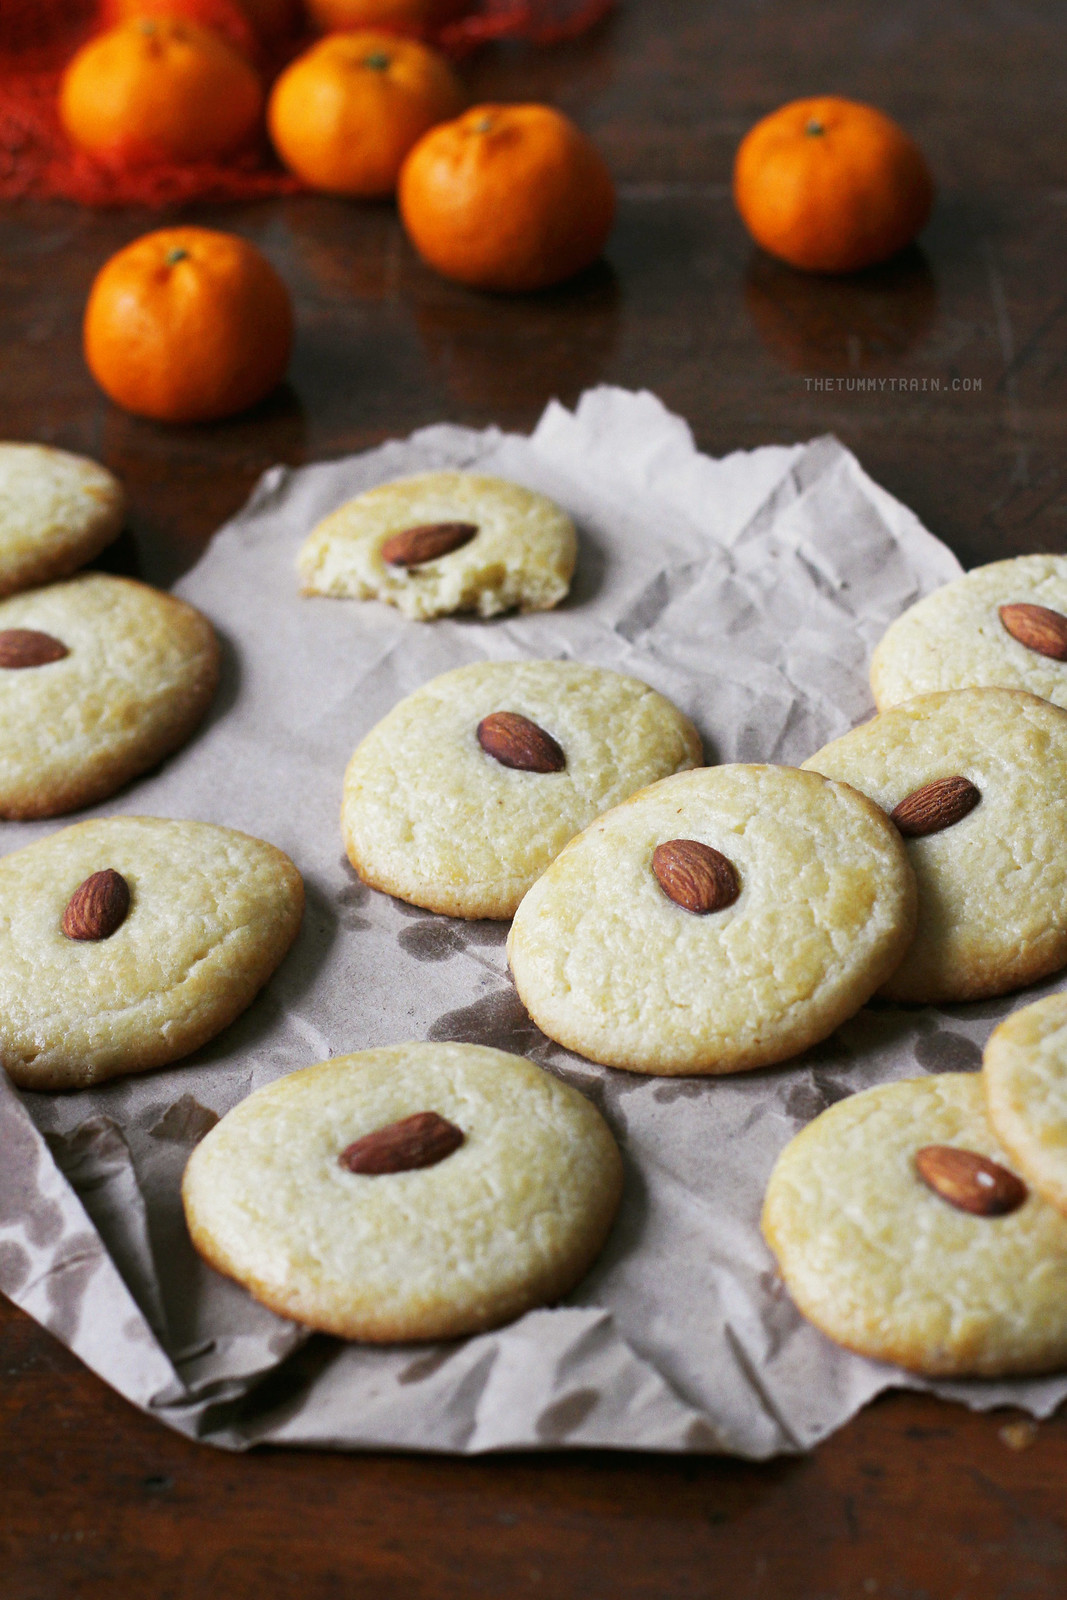 24873895655 5394e150c2 h - Celebrating with these Lunar New Year Almond Cookies